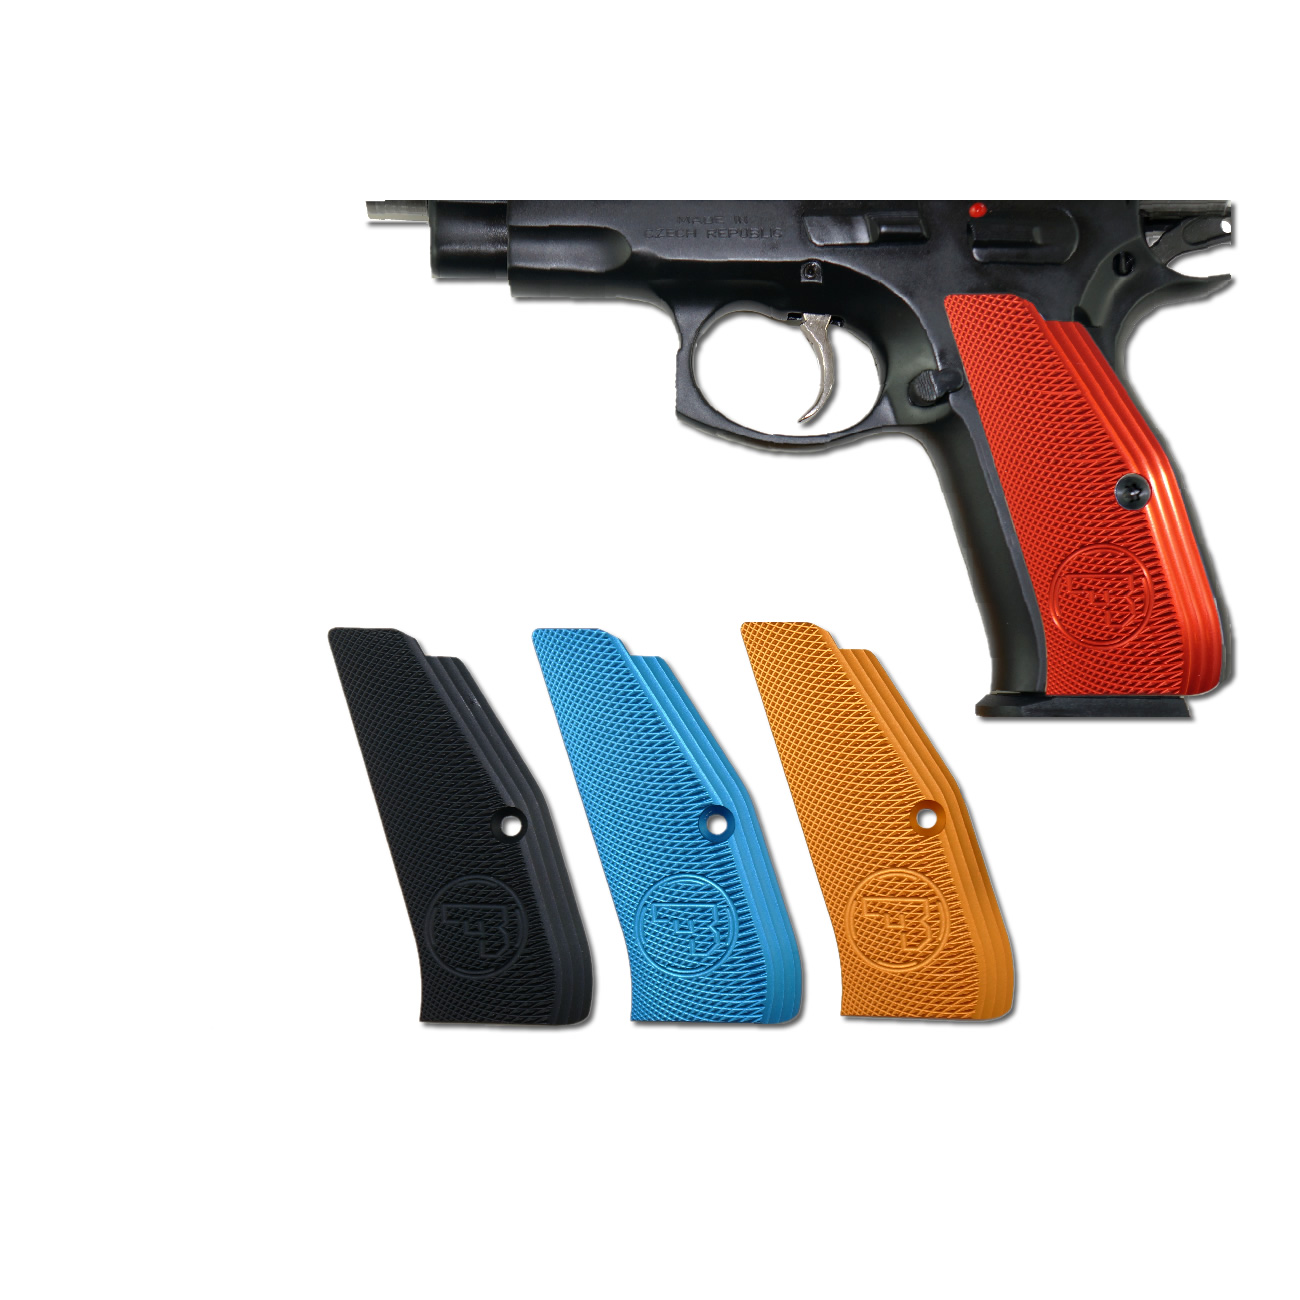 CZ Low Profile Grips, Red anodized Aluminum